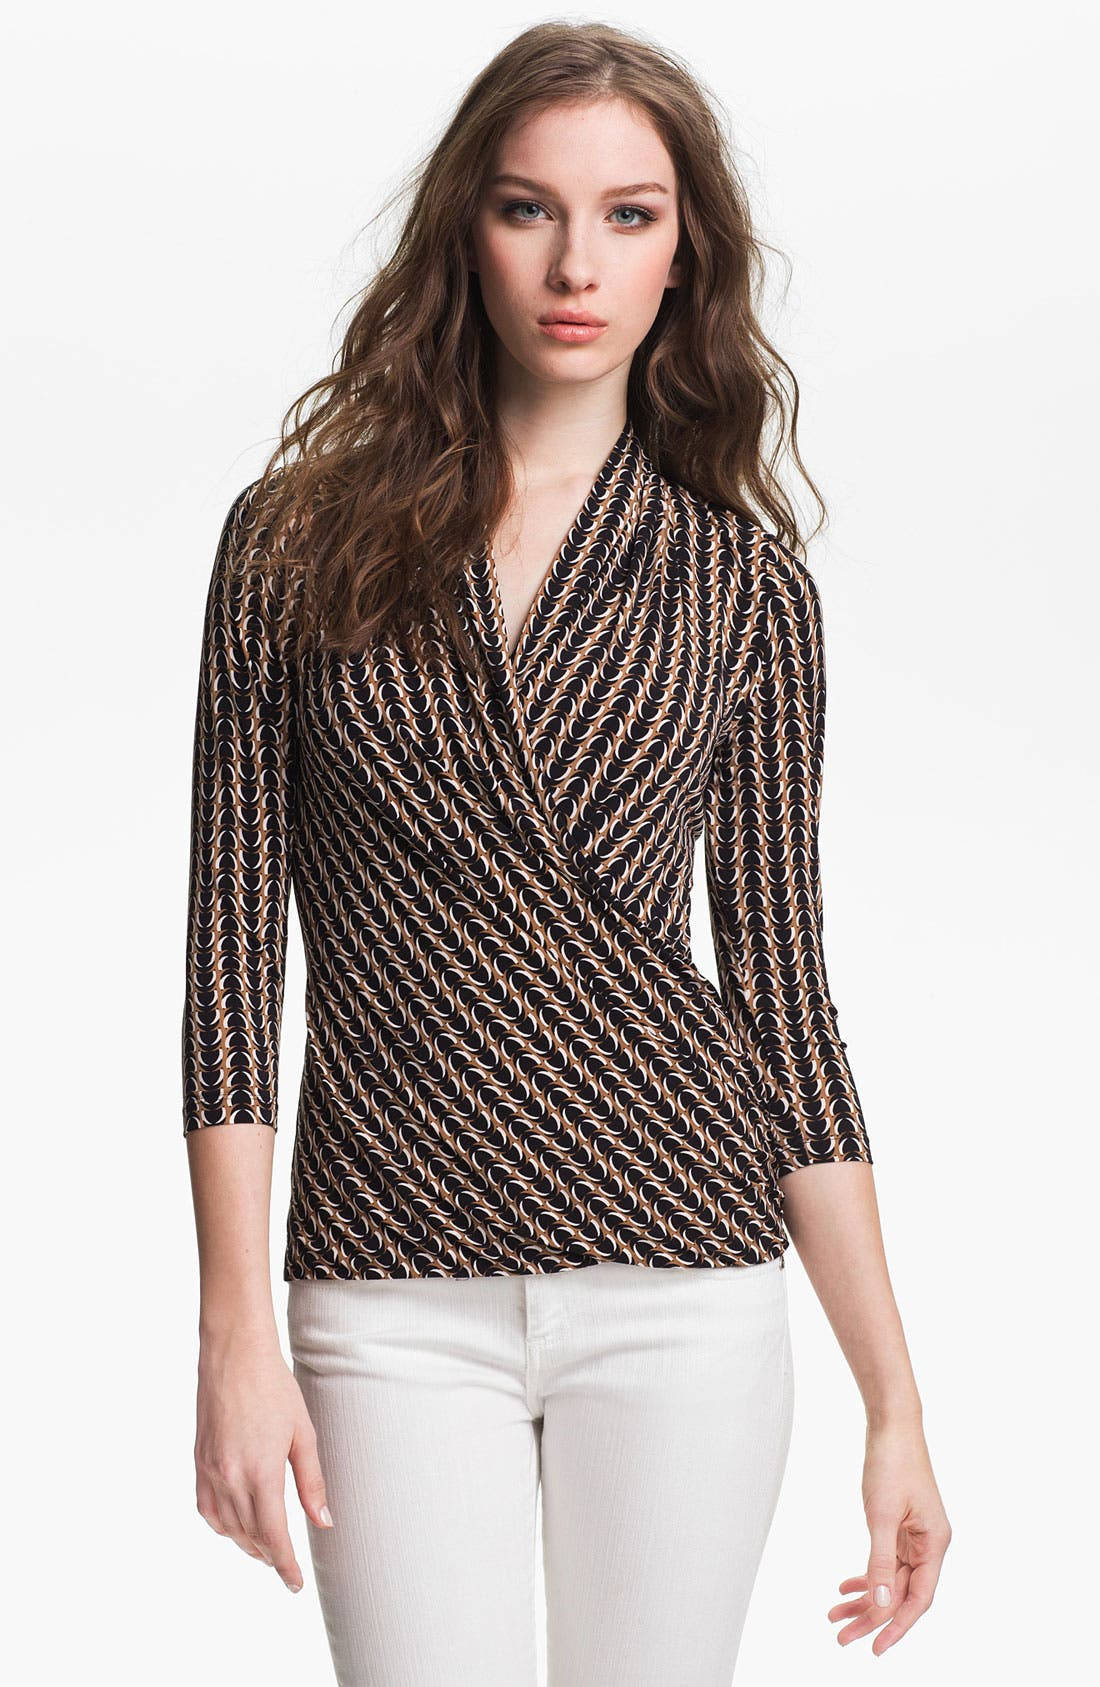 Alternate Image 1 Selected - Vince Camuto Faux Wrap Print Top